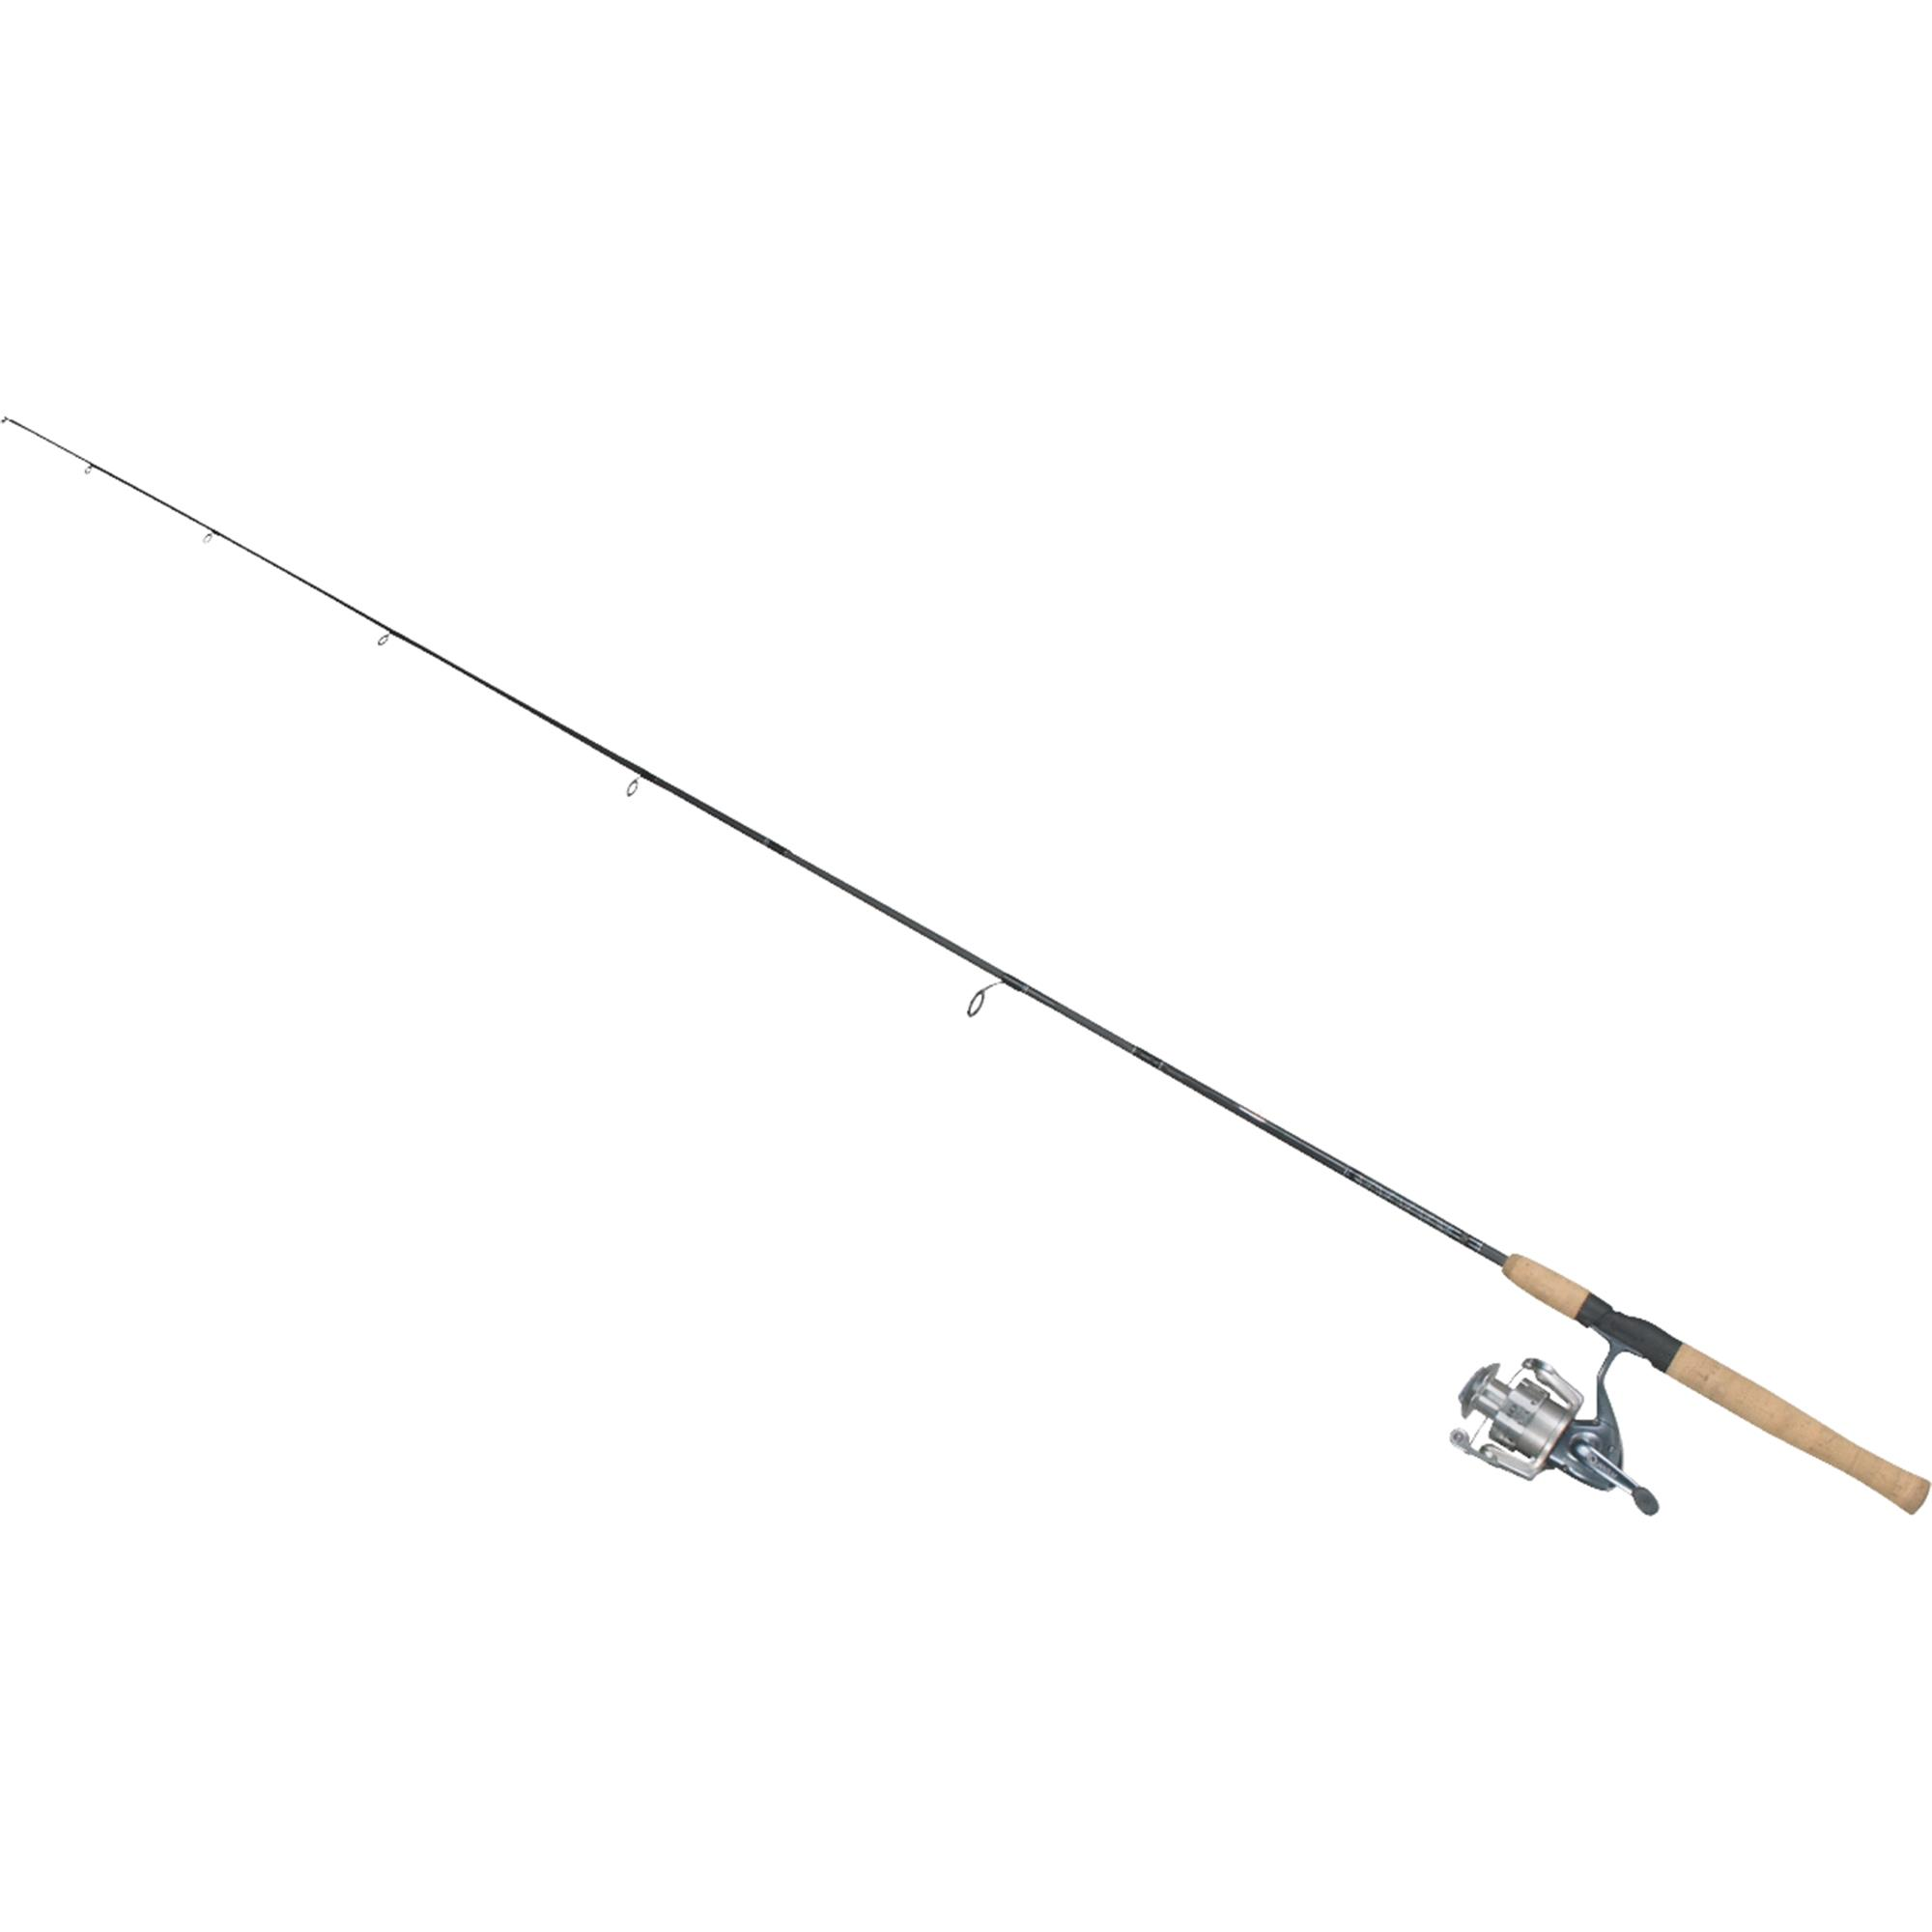 Quantum Optix Spinning Fishing Rod & Reel Combo by Zebco Corp.